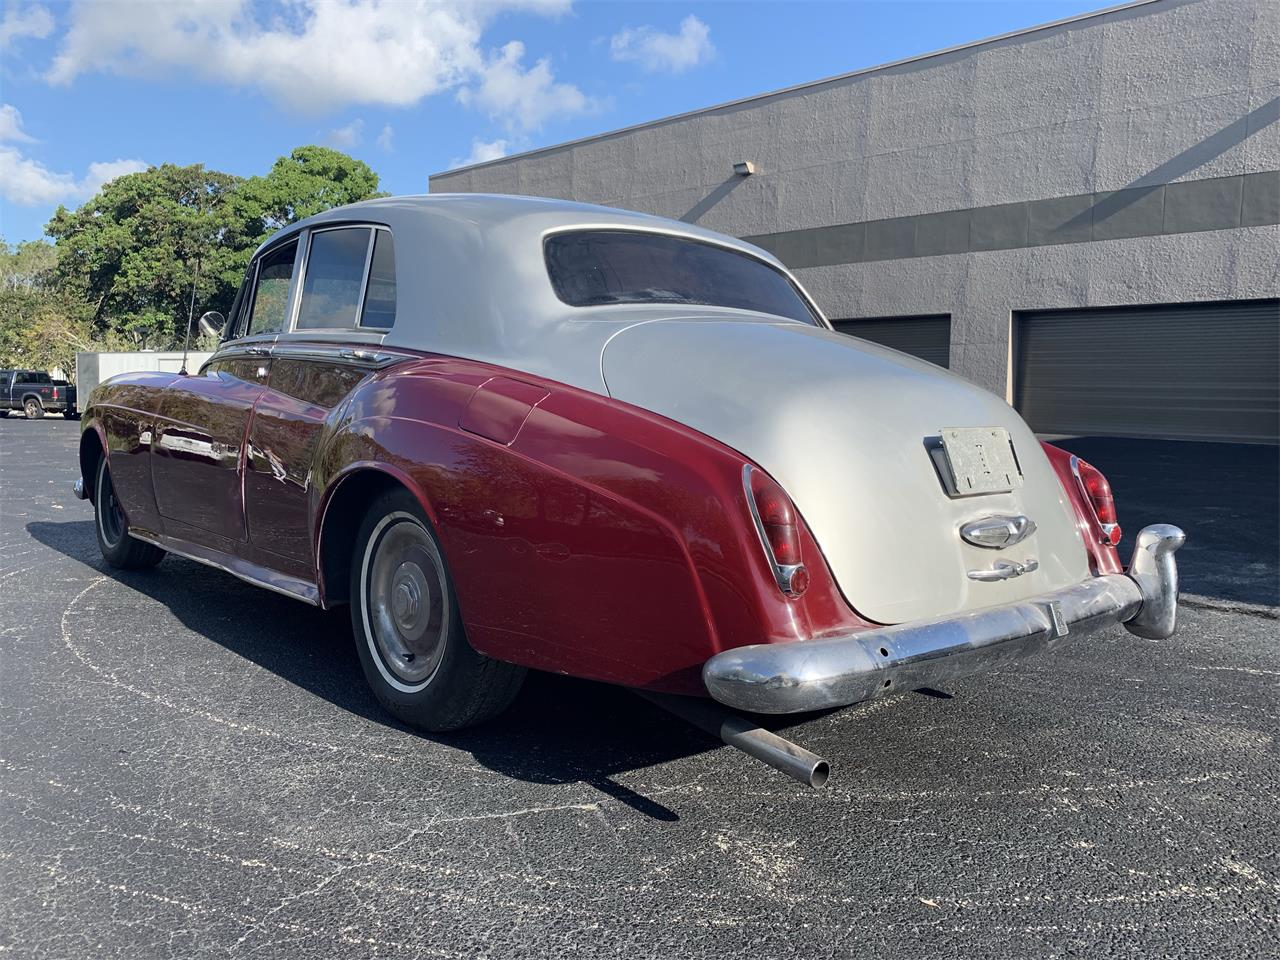 Large Picture of 1964 Rolls-Royce Silver Cloud III located in Florida - $49,000.00 Offered by European Autobody, Inc. - PXPV